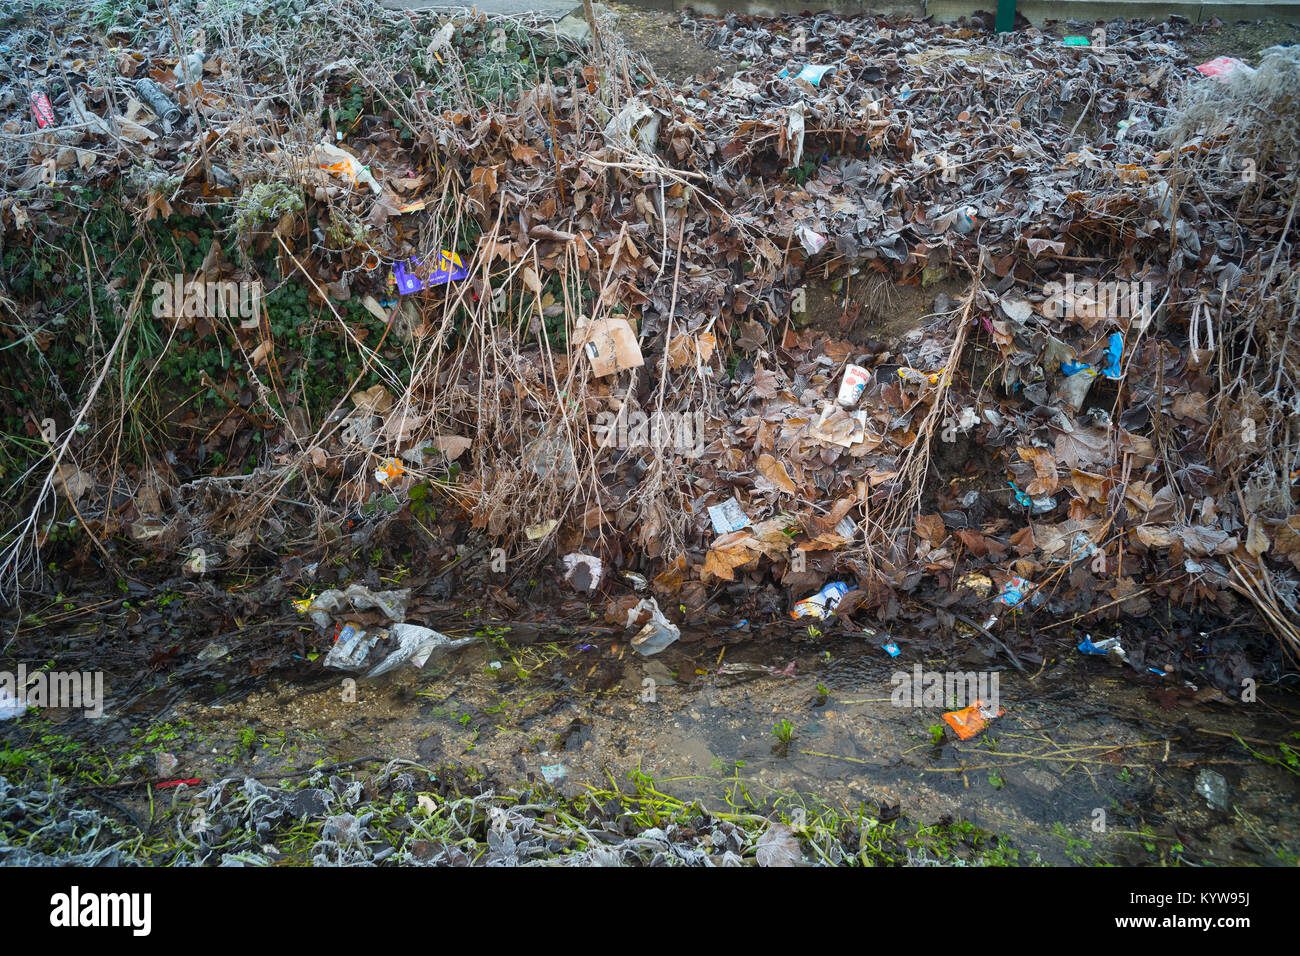 Garbage - Stock Image